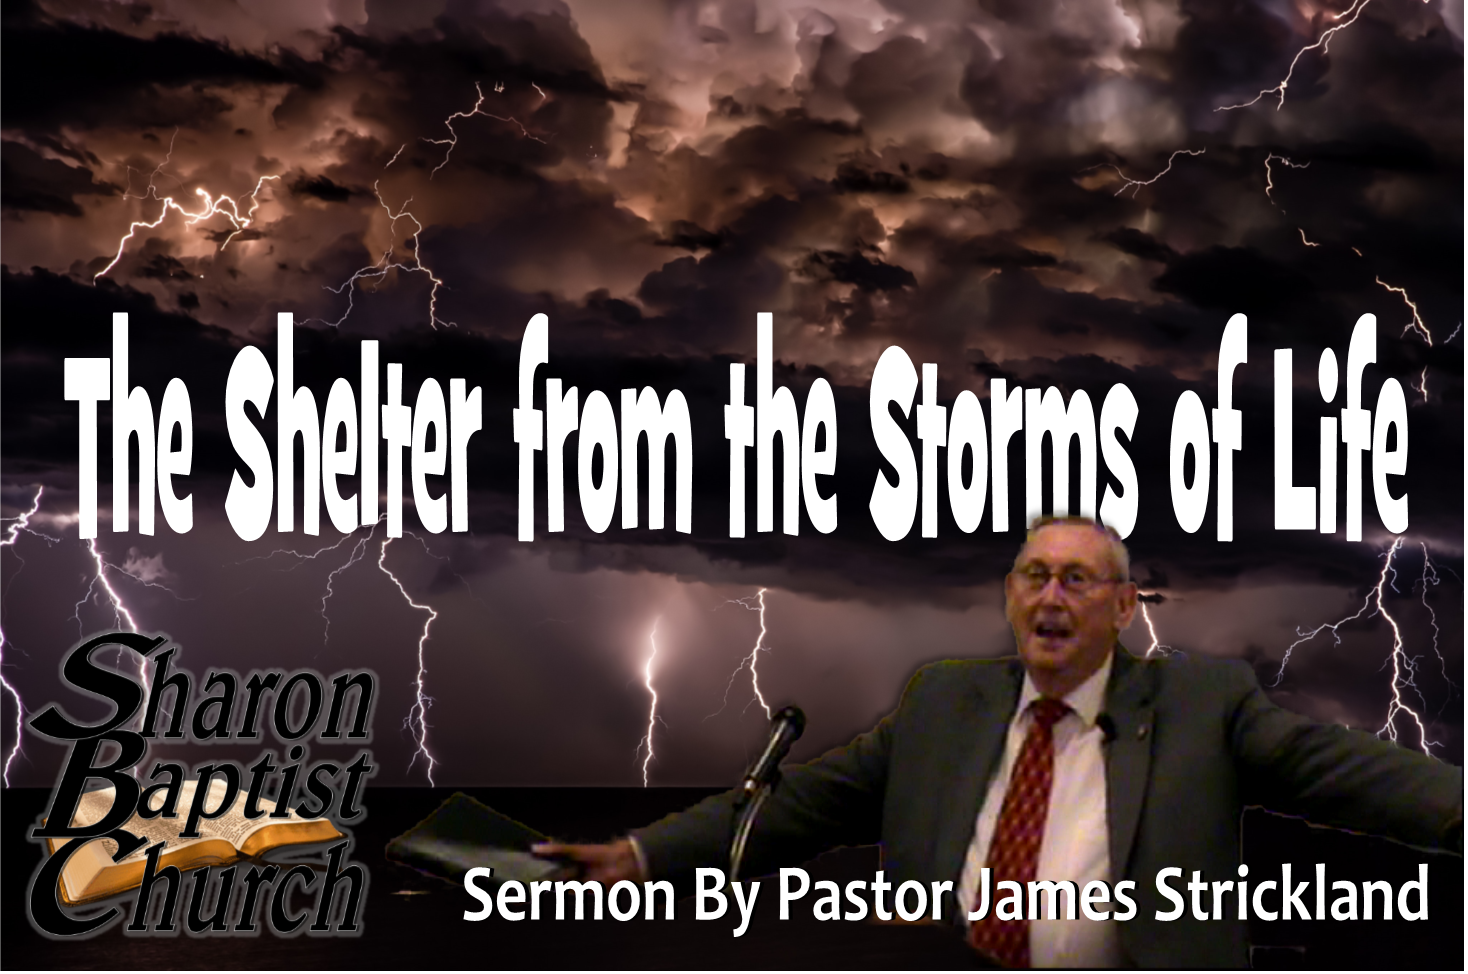 The Shelter from the Storms of Life SERMON Art